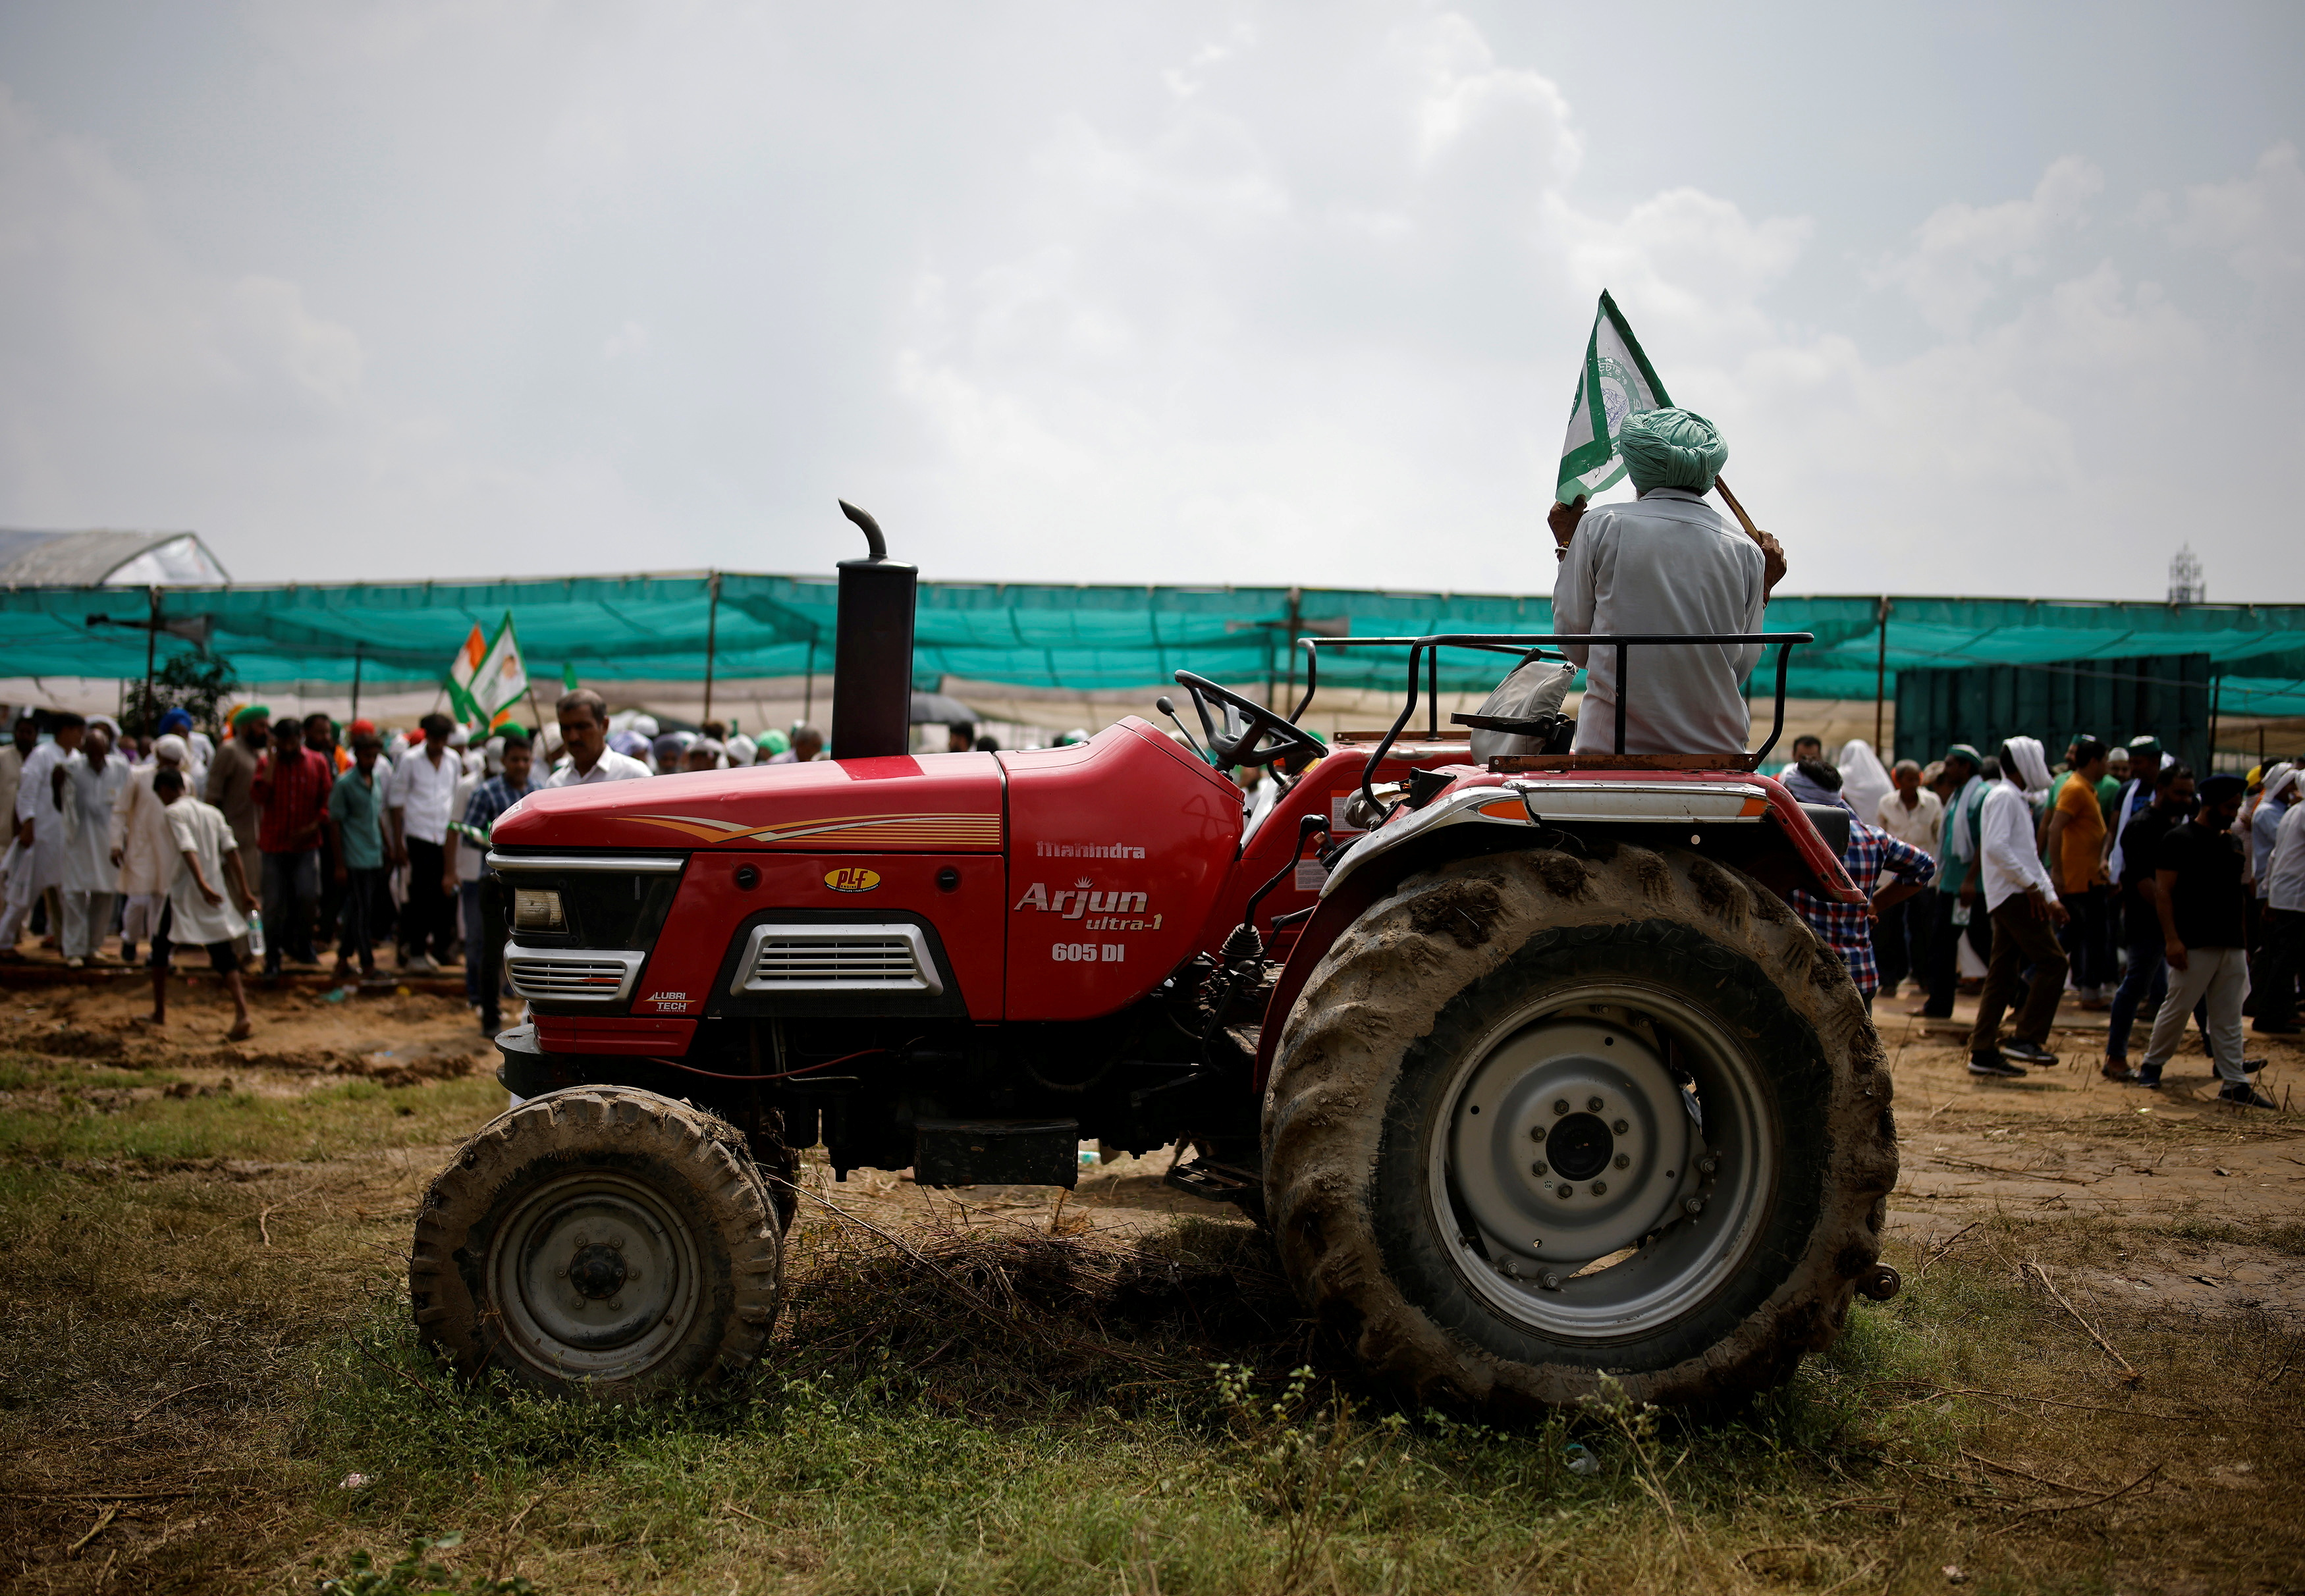 A farmer sits on a tractor as he attends a Maha Panchayat or grand village council meeting as part of a protest against farm laws in Muzaffarnagar in the northern state of Uttar Pradesh, India, September 5, 2021. REUTERS/Adnan Abidi/File Photo